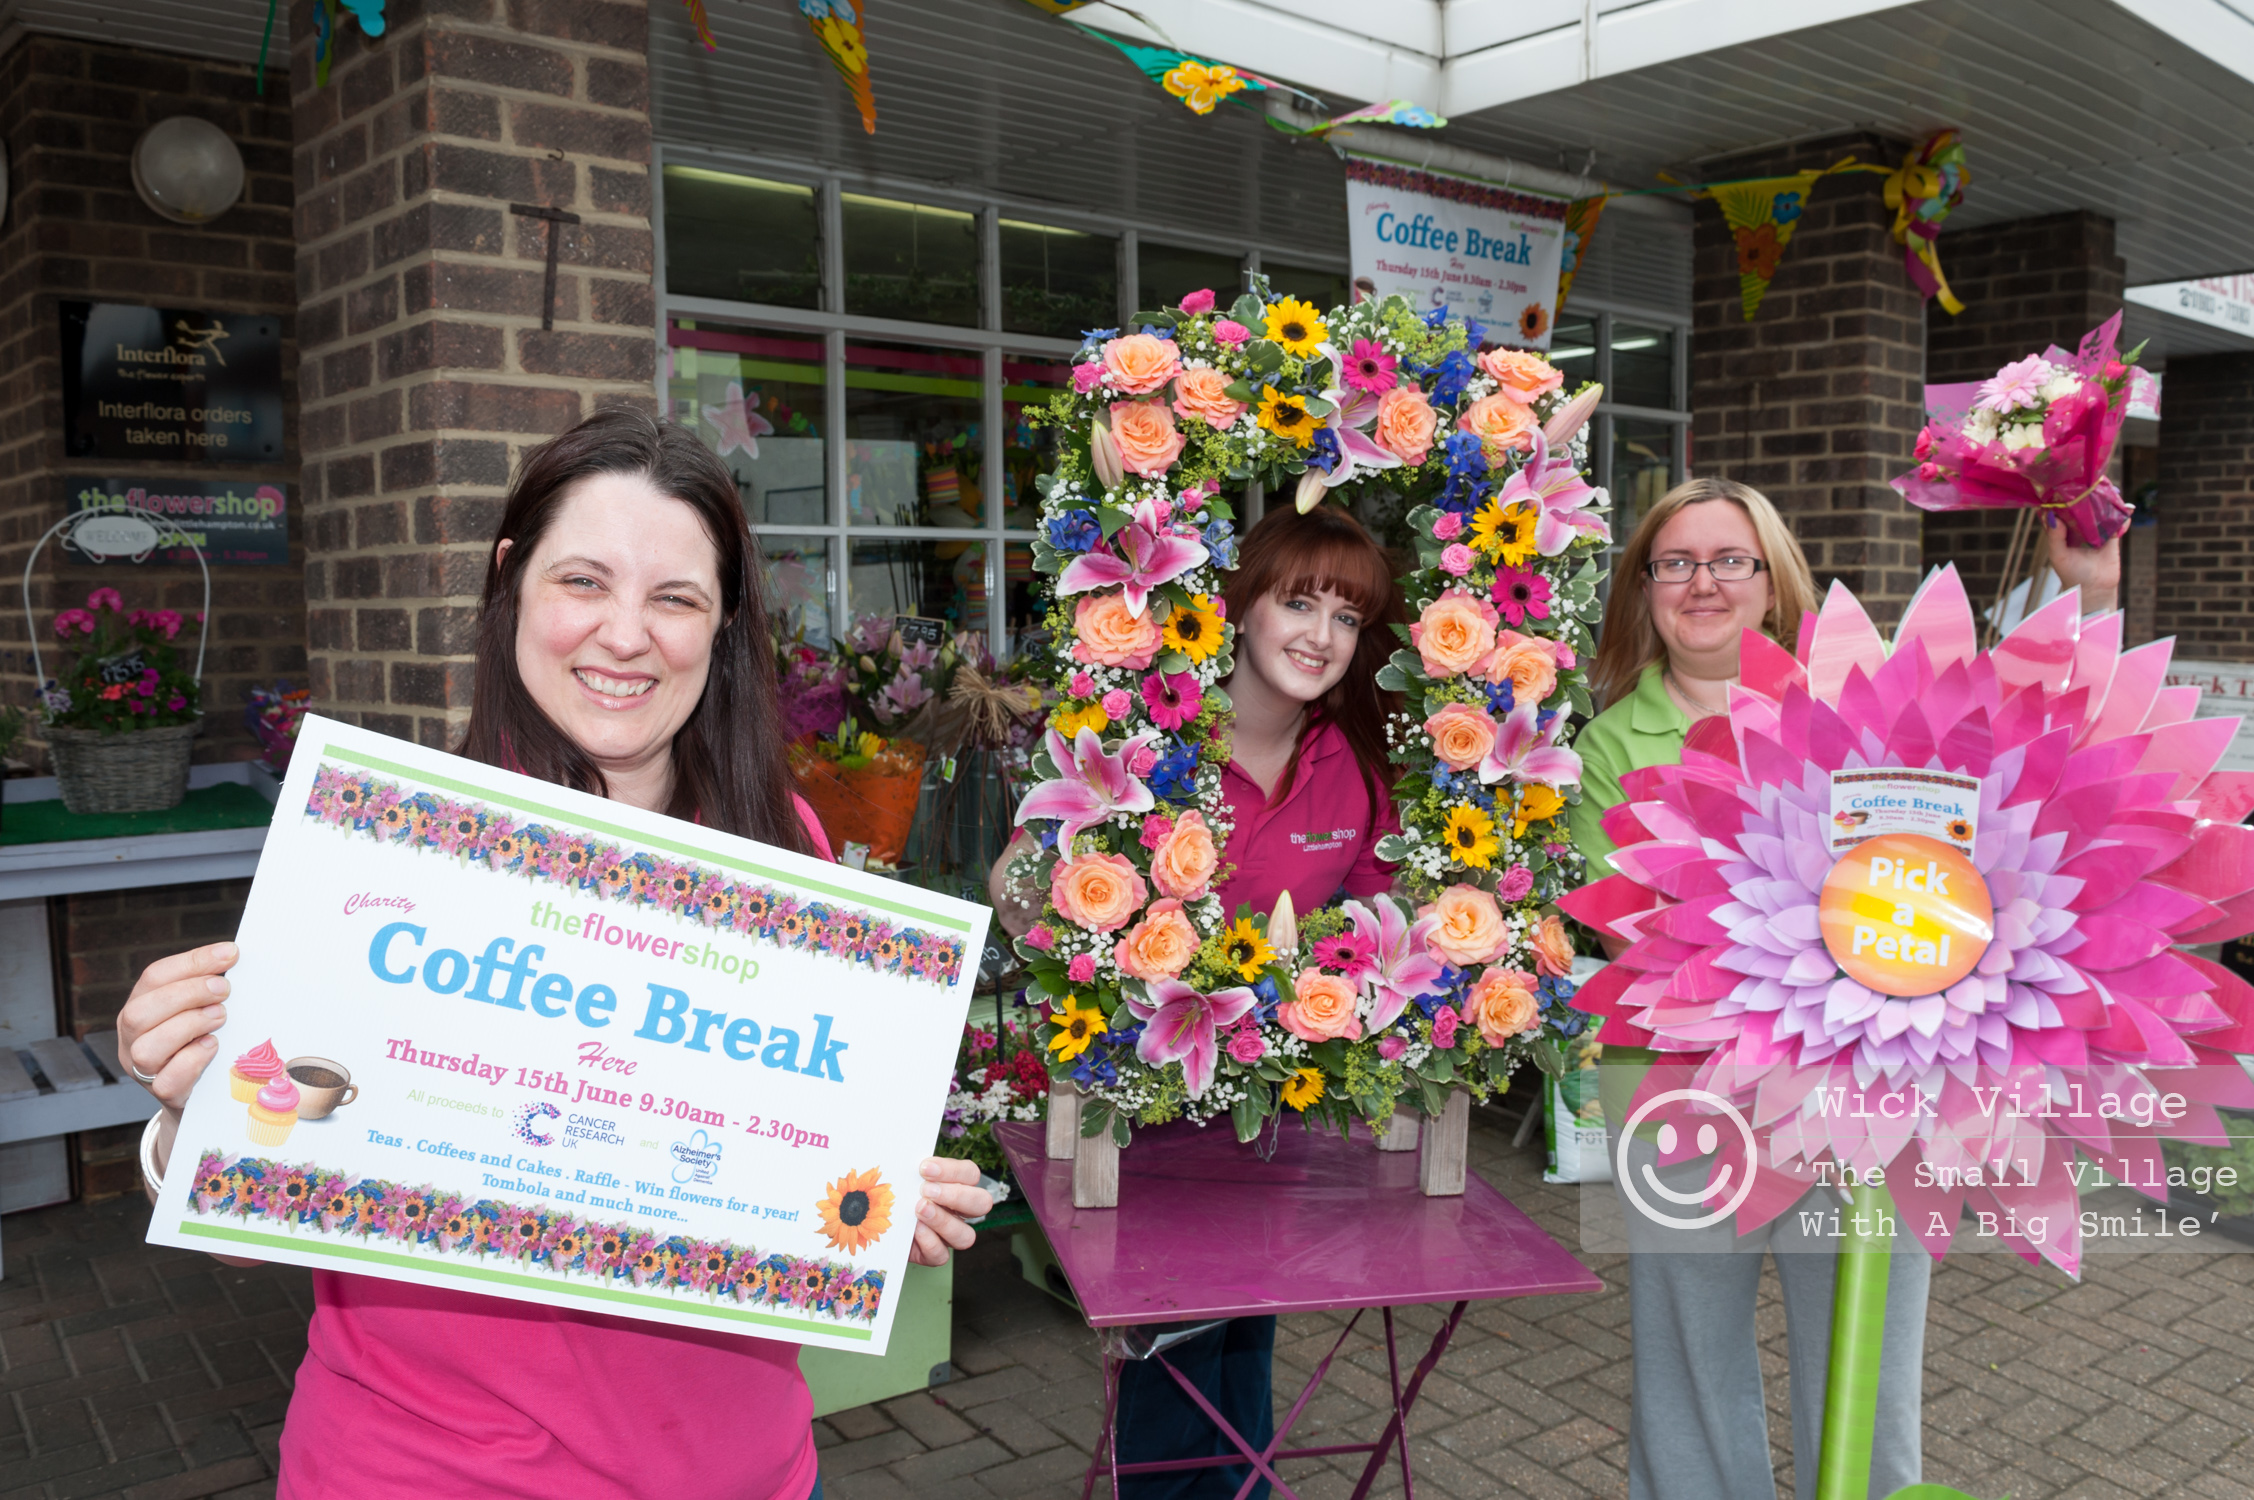 The staff at The Flower Shop in Wick Village, Littlehampton often hold events to raise money for charity. Photo © Scott Ramsey / Wick Village Traders Association.